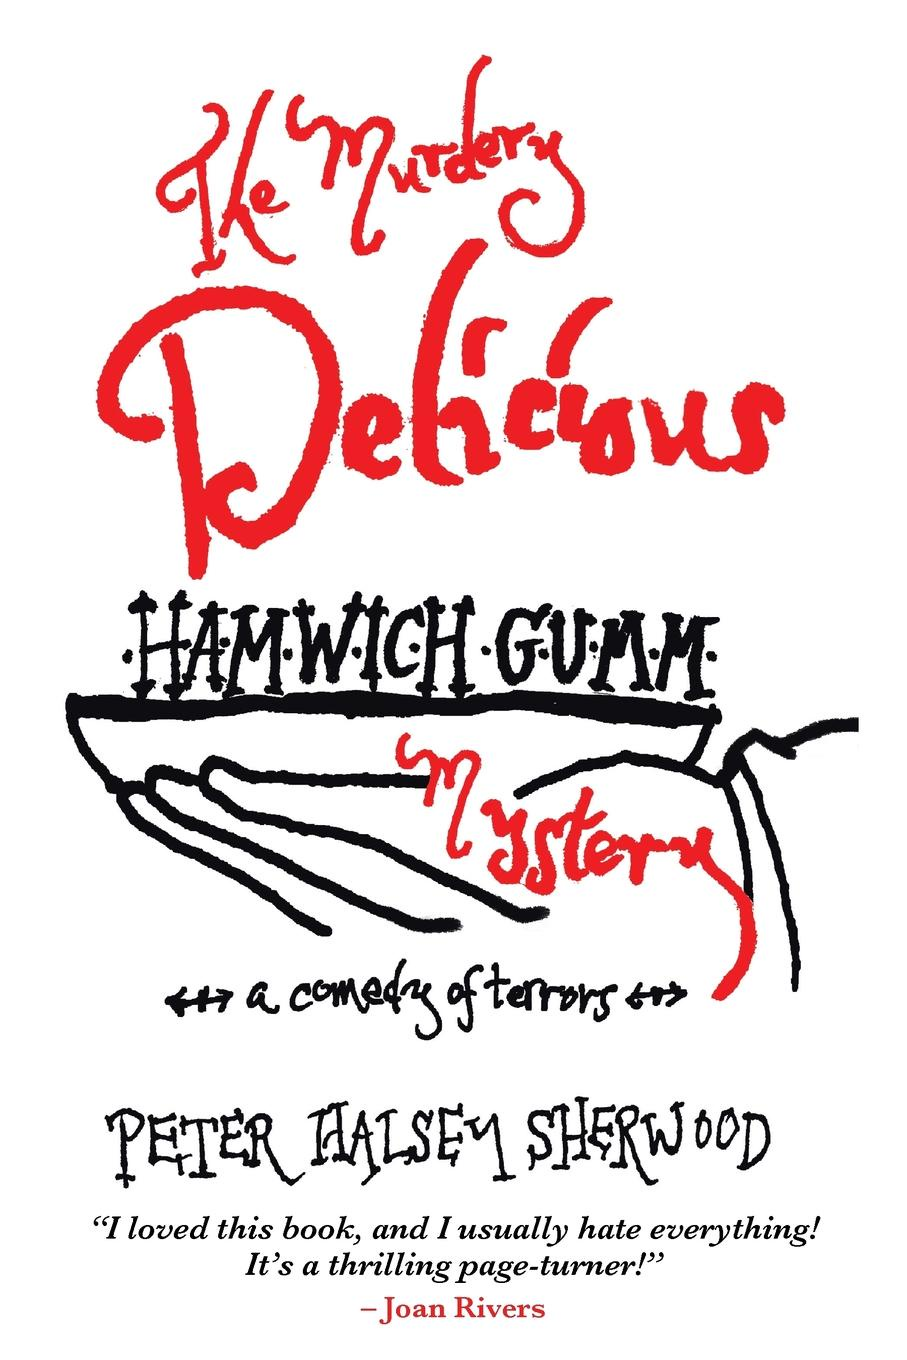 Peter Halsey Sherwood The Murdery Delicious Hamwich Gumm Mystery. A Comedy of Terrors цены